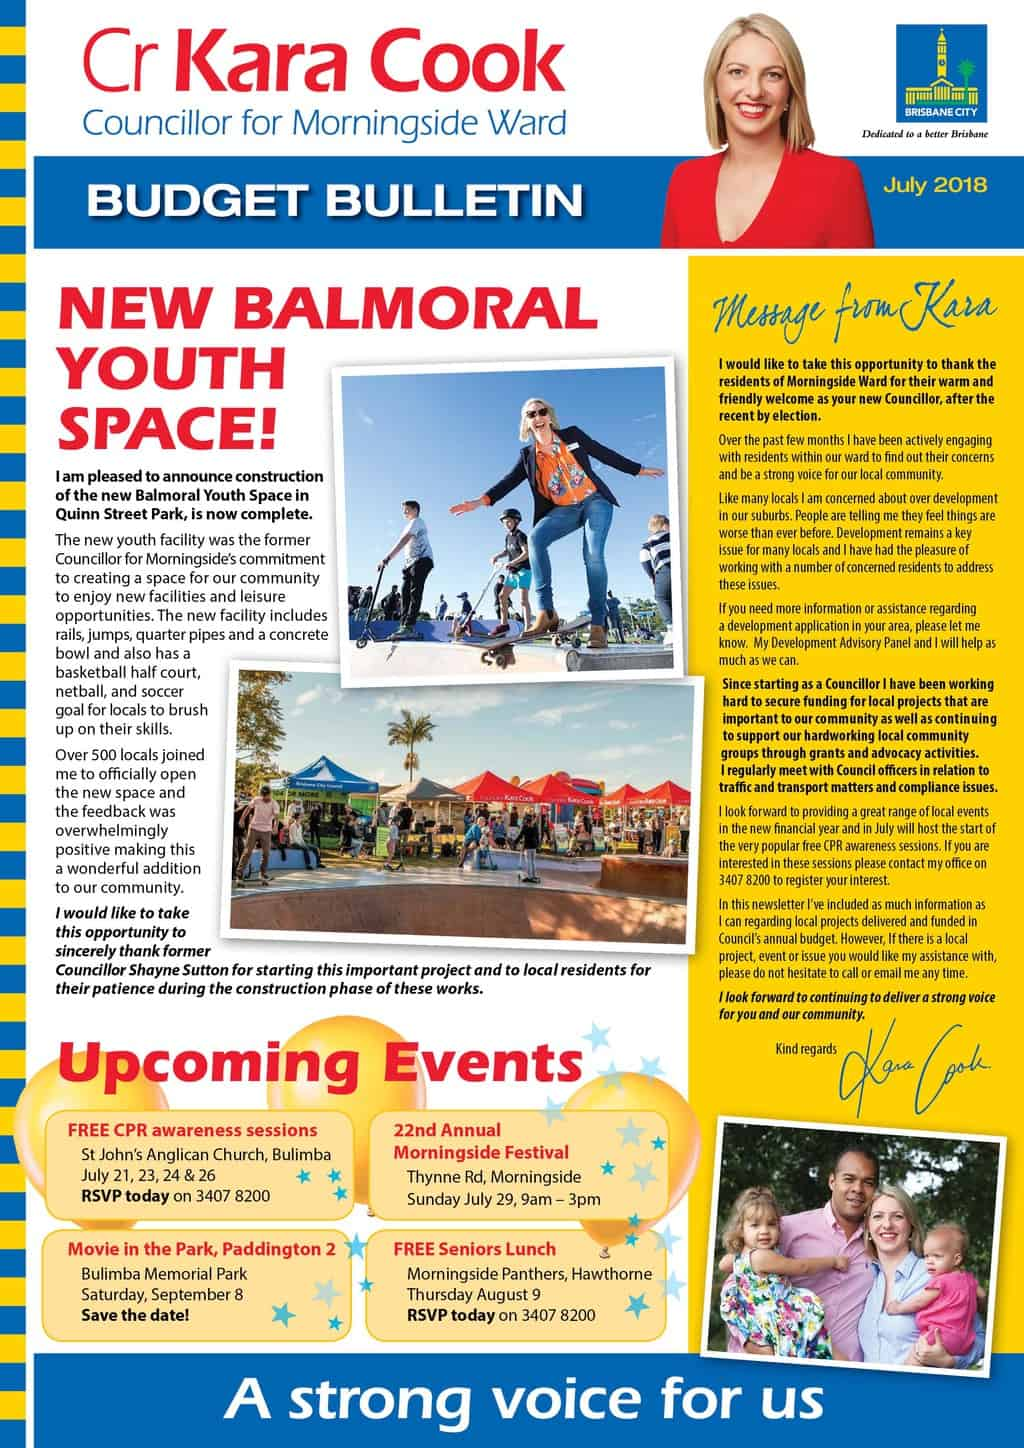 New Balmoral Youth Space